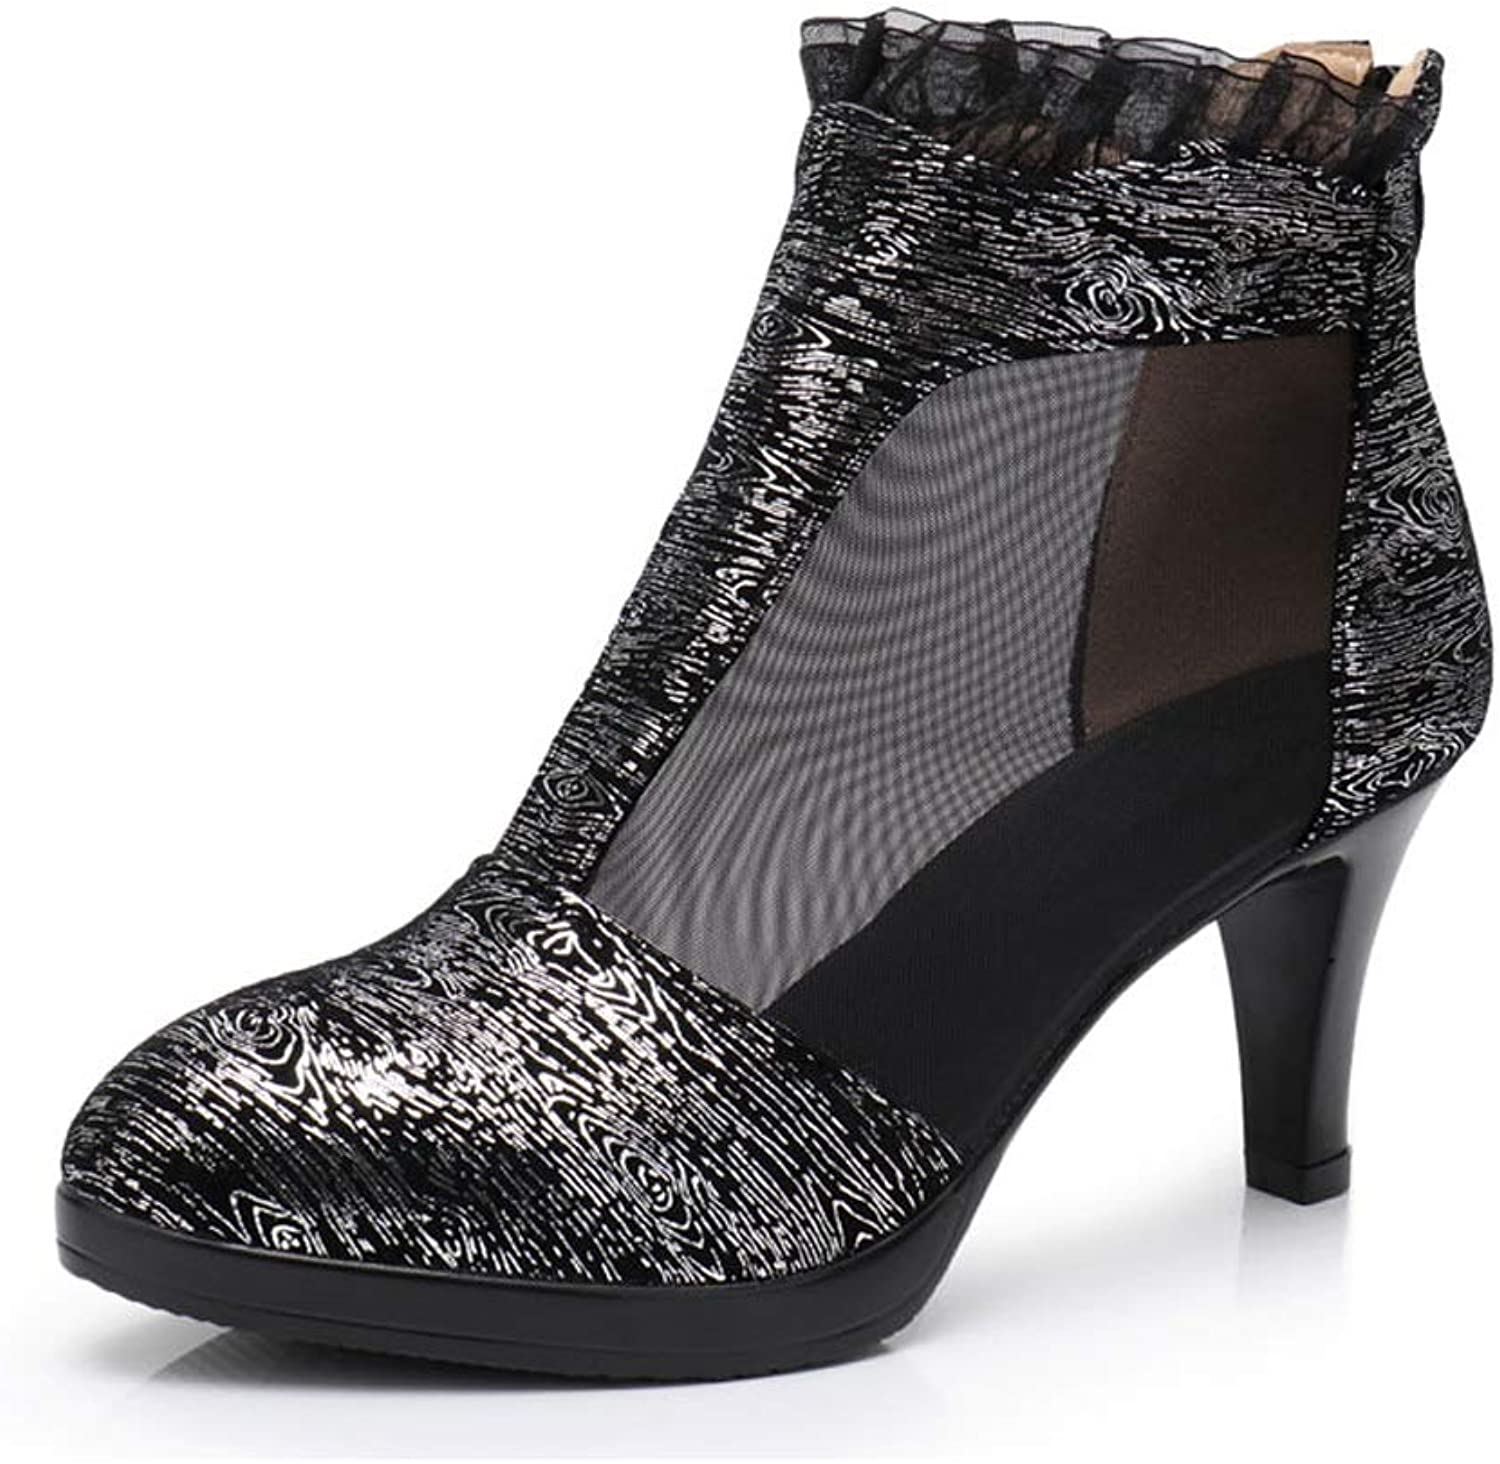 TARSHIN Single shoes Spring and Summer Mesh Boots Hollow Bare Boots Short High Heel Women's Boots